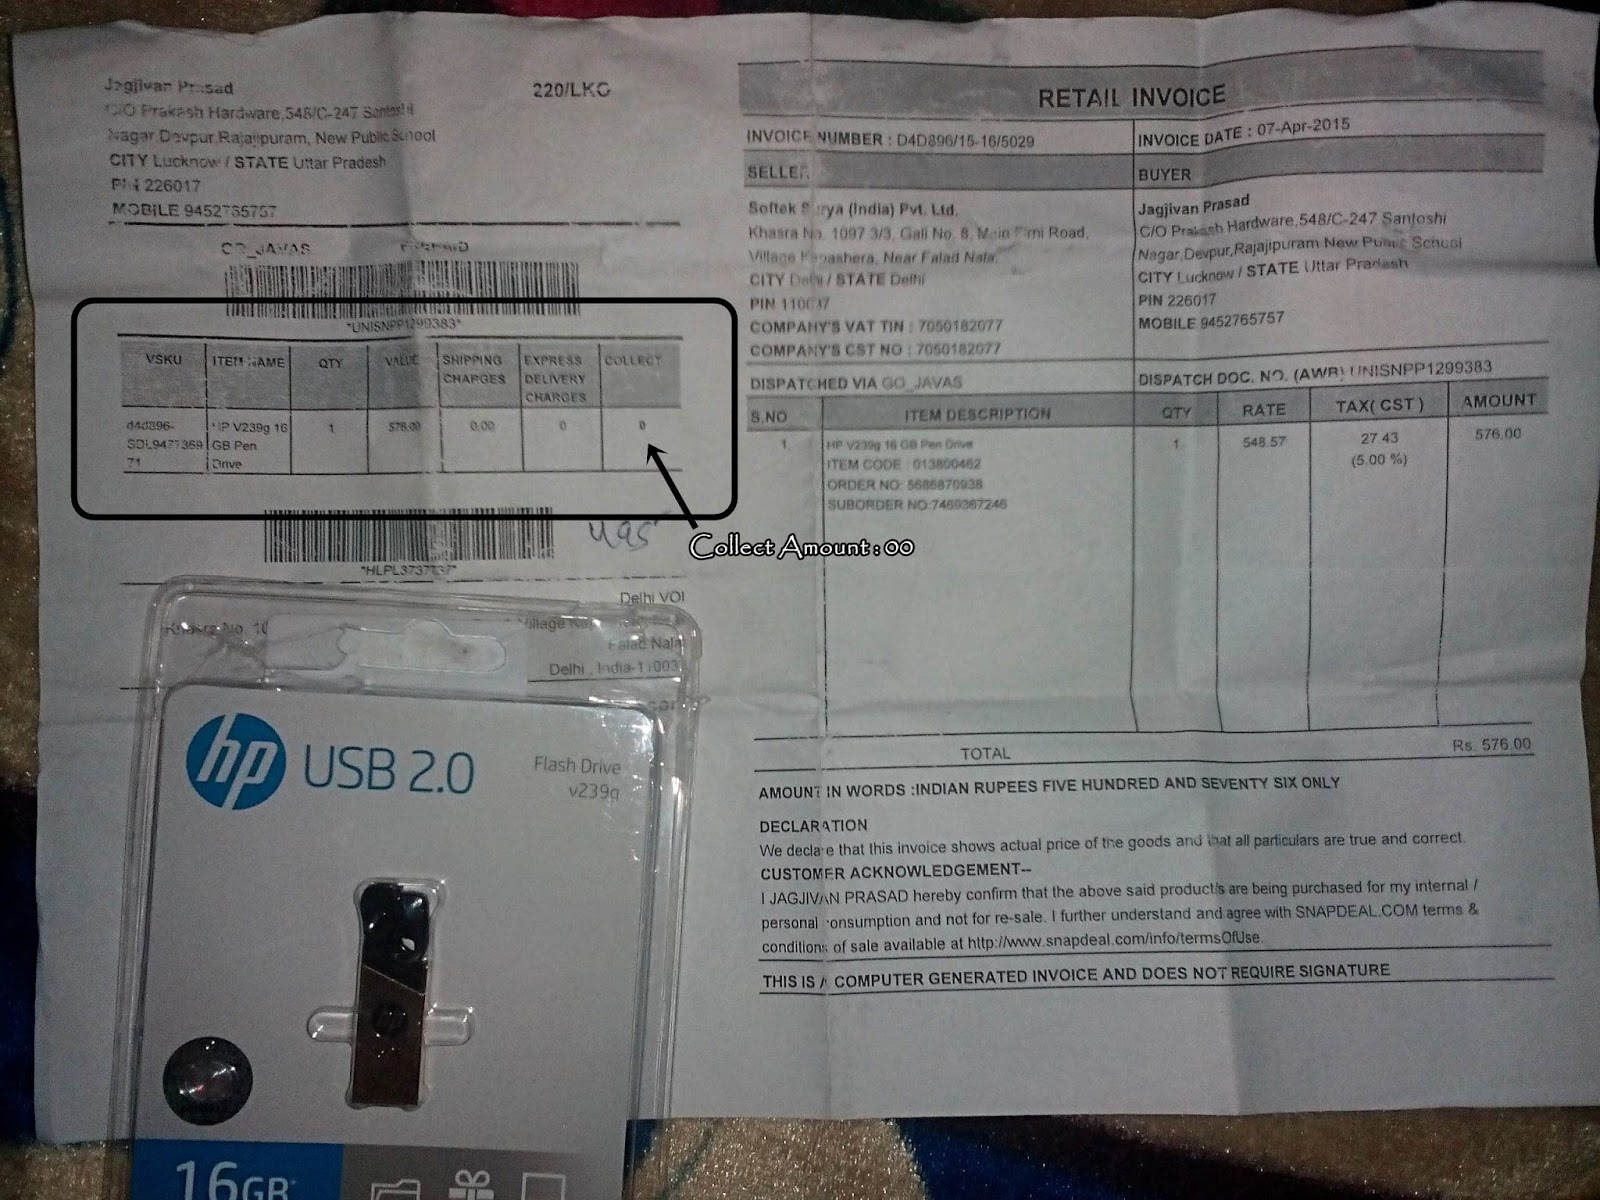 How To Get 16 GB Pendrive For Free From Snapdeal(With Proof) - [Offer Ended]